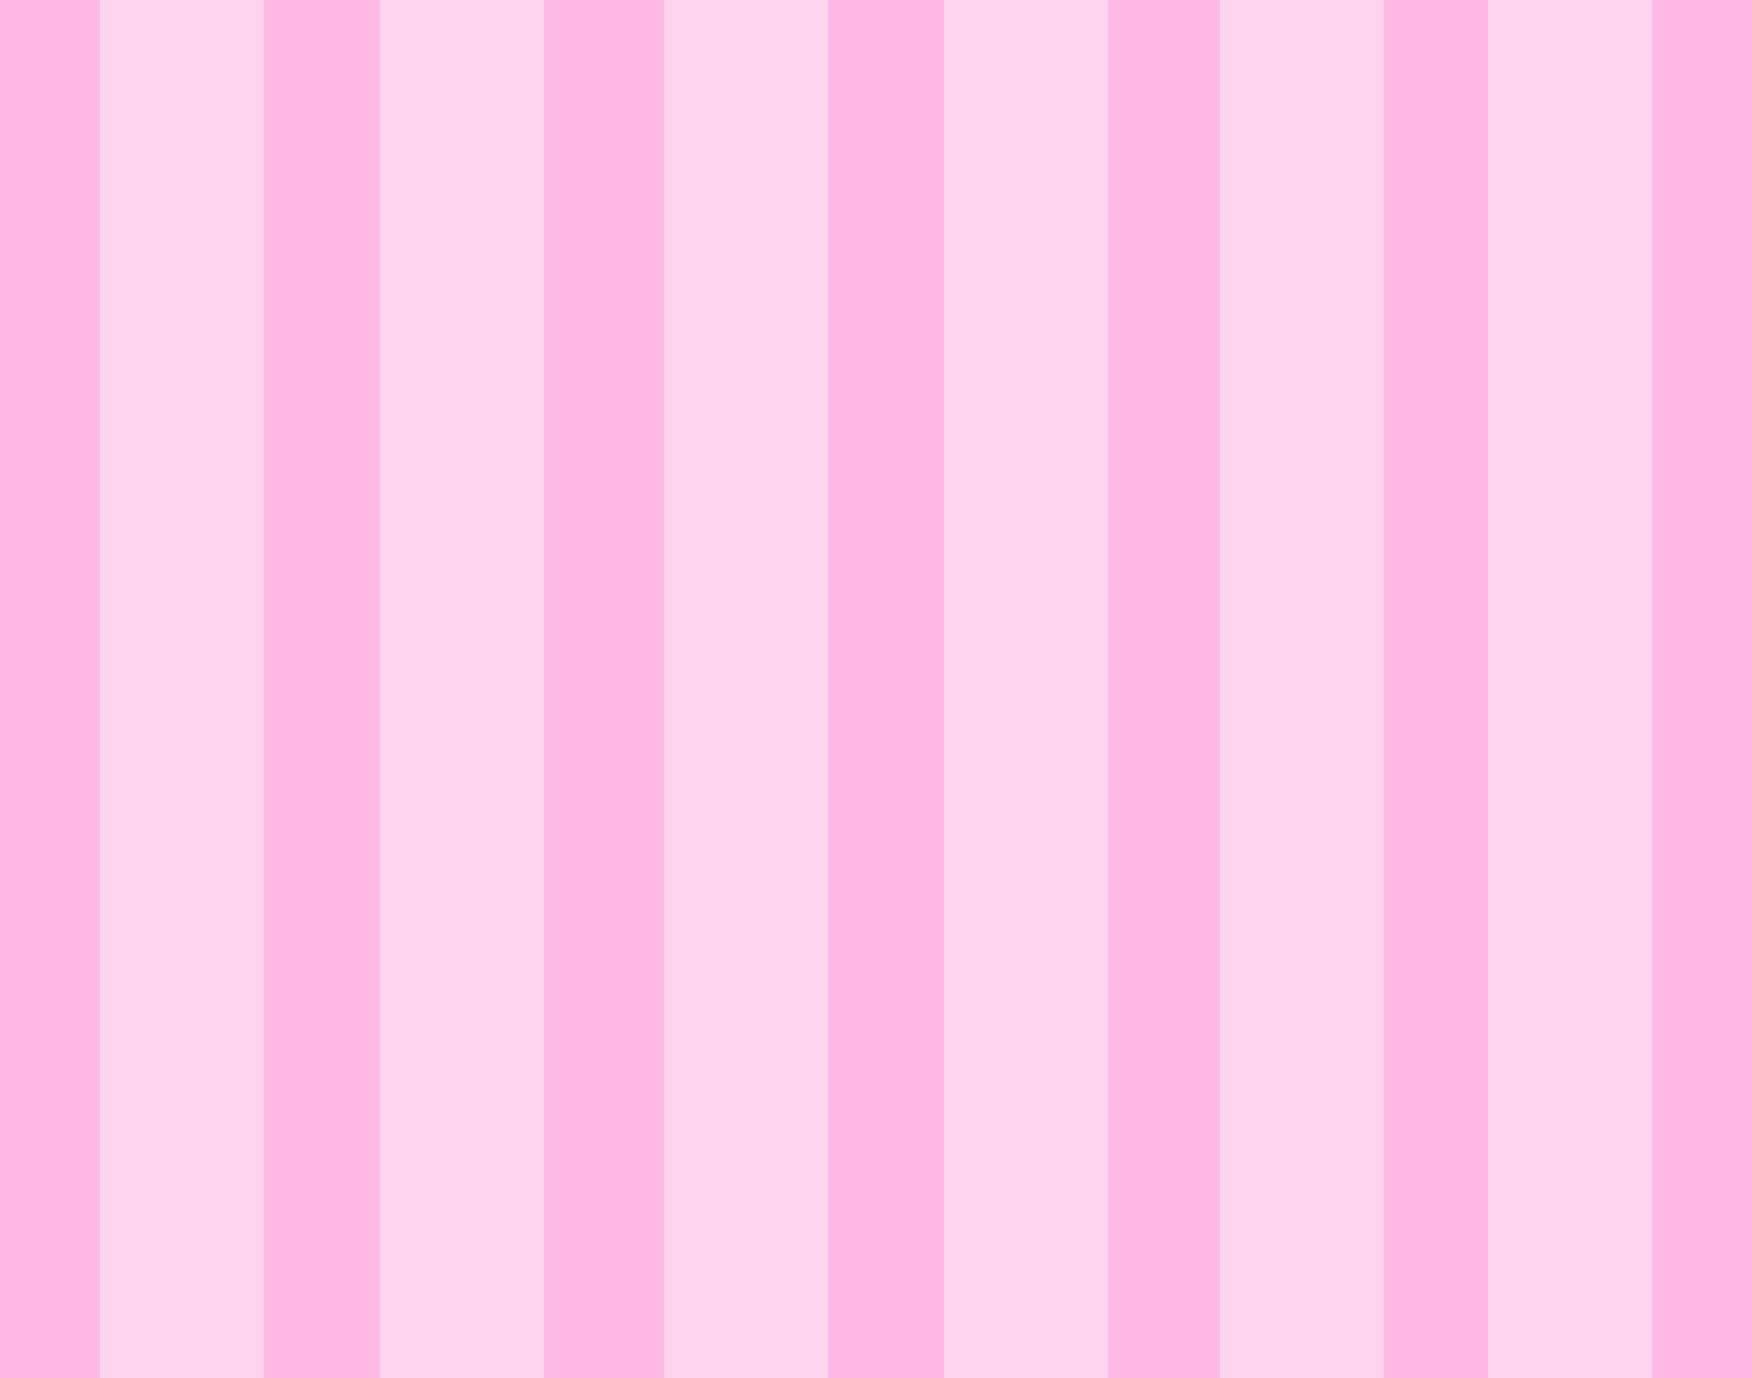 Pin By Ashley Whittle On Iphone Pinterest Pink Stripe